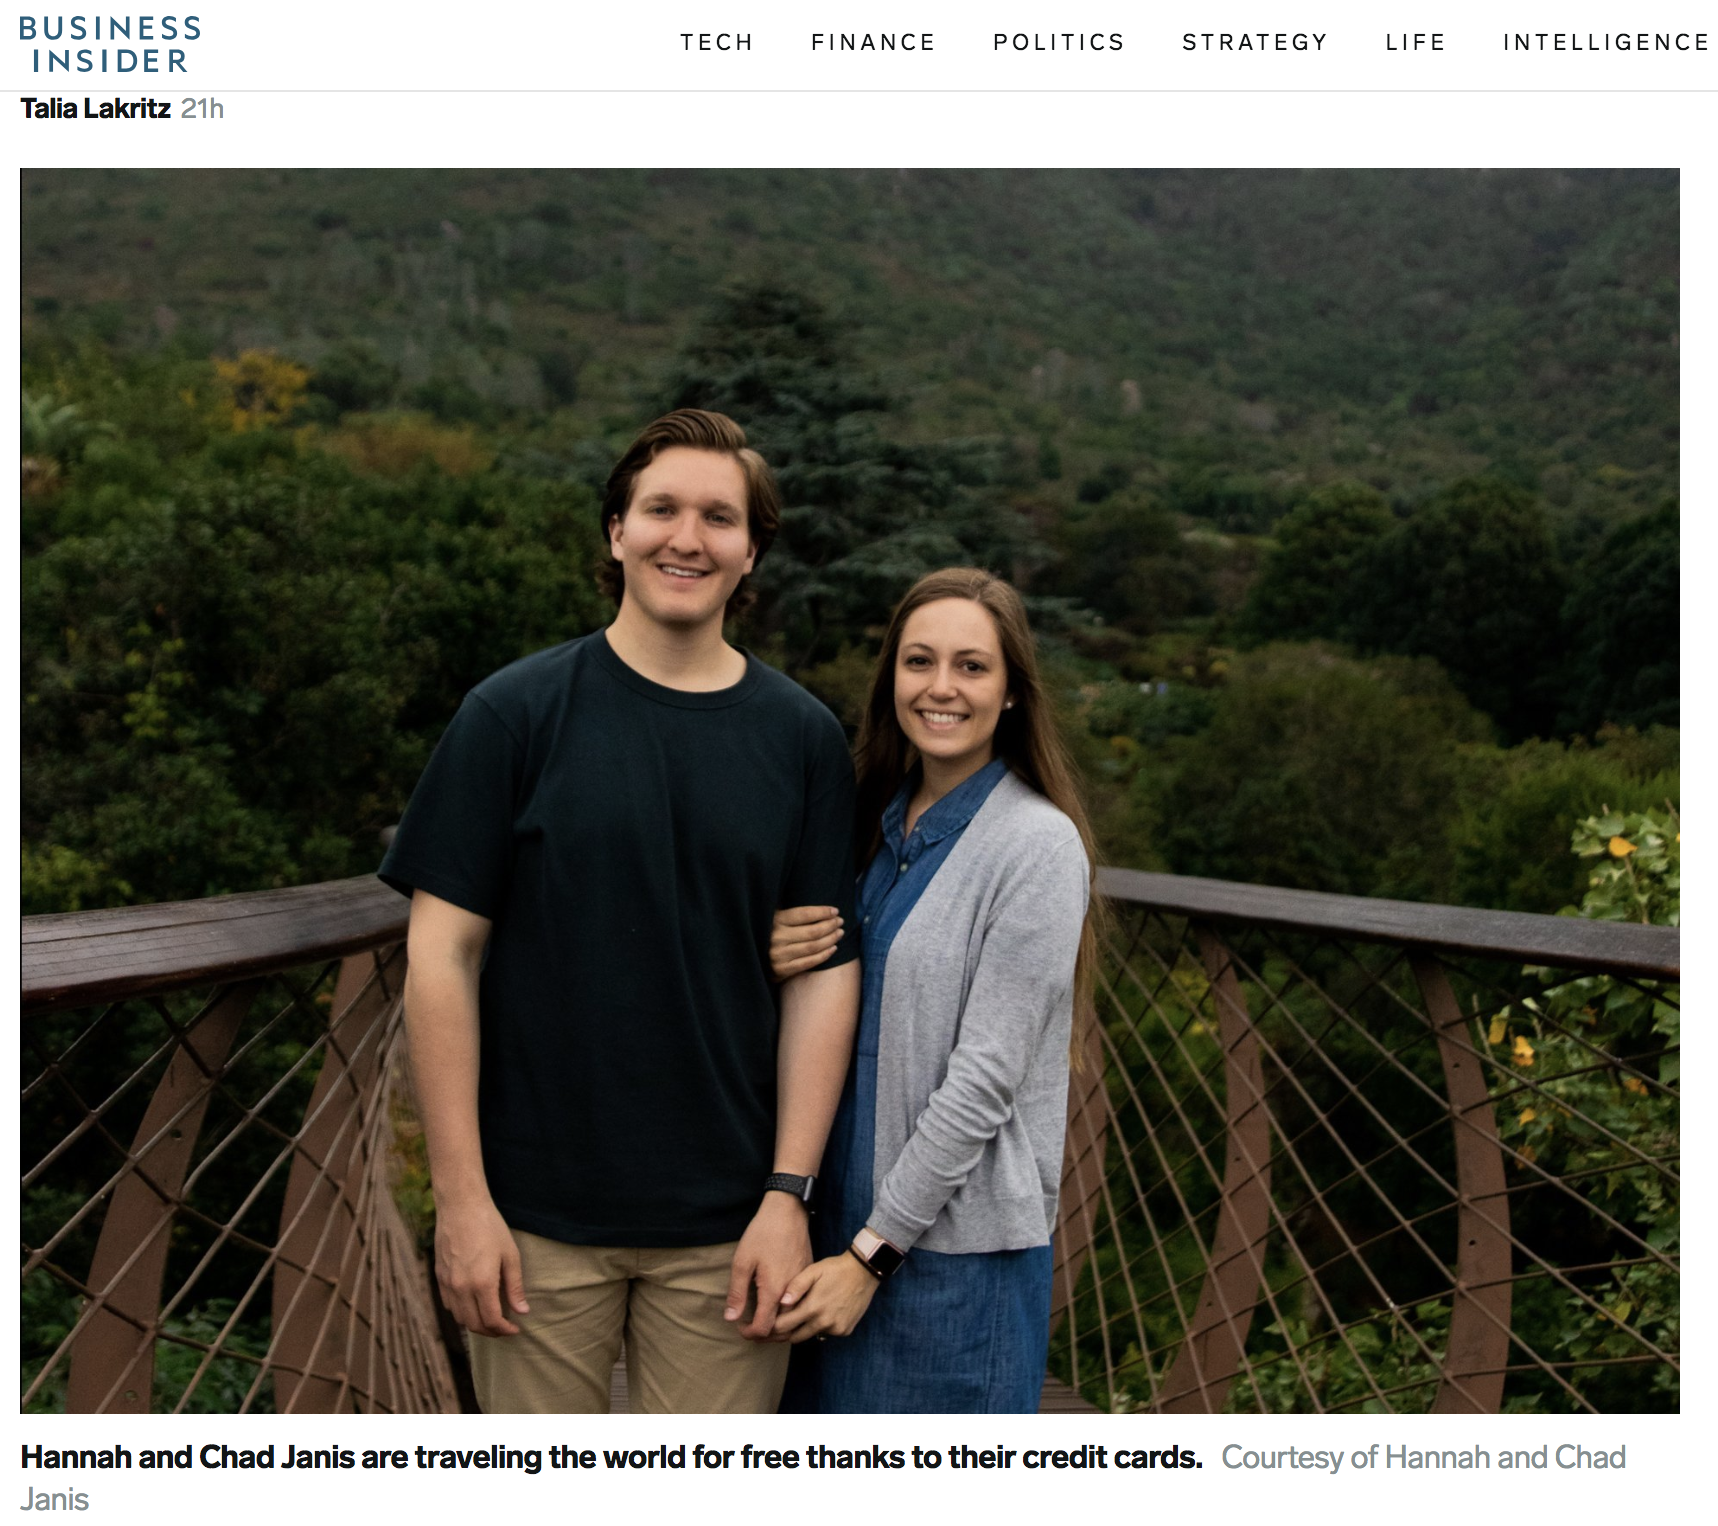 Business Insider - This couple is traveling the world for free